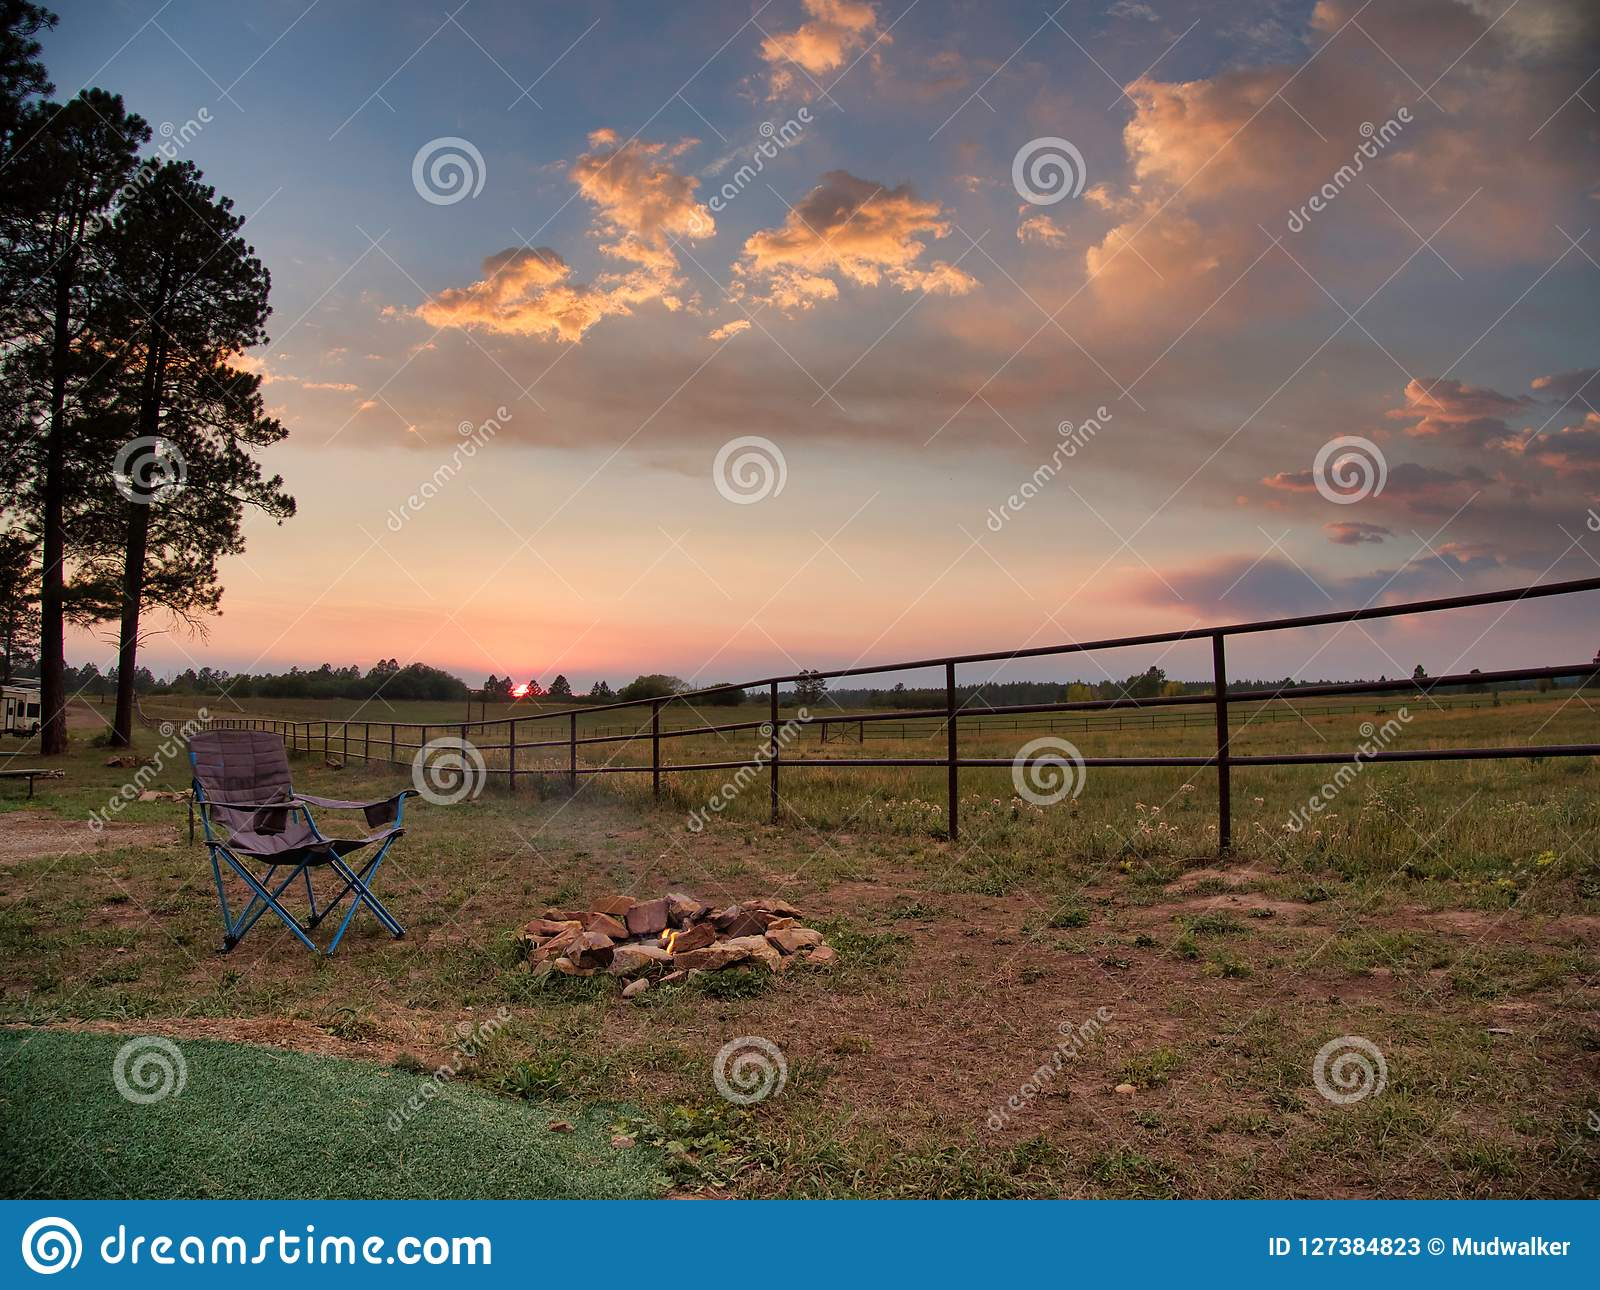 Echo Basin Ranch Campfire At Sunset Stock Image - Image of